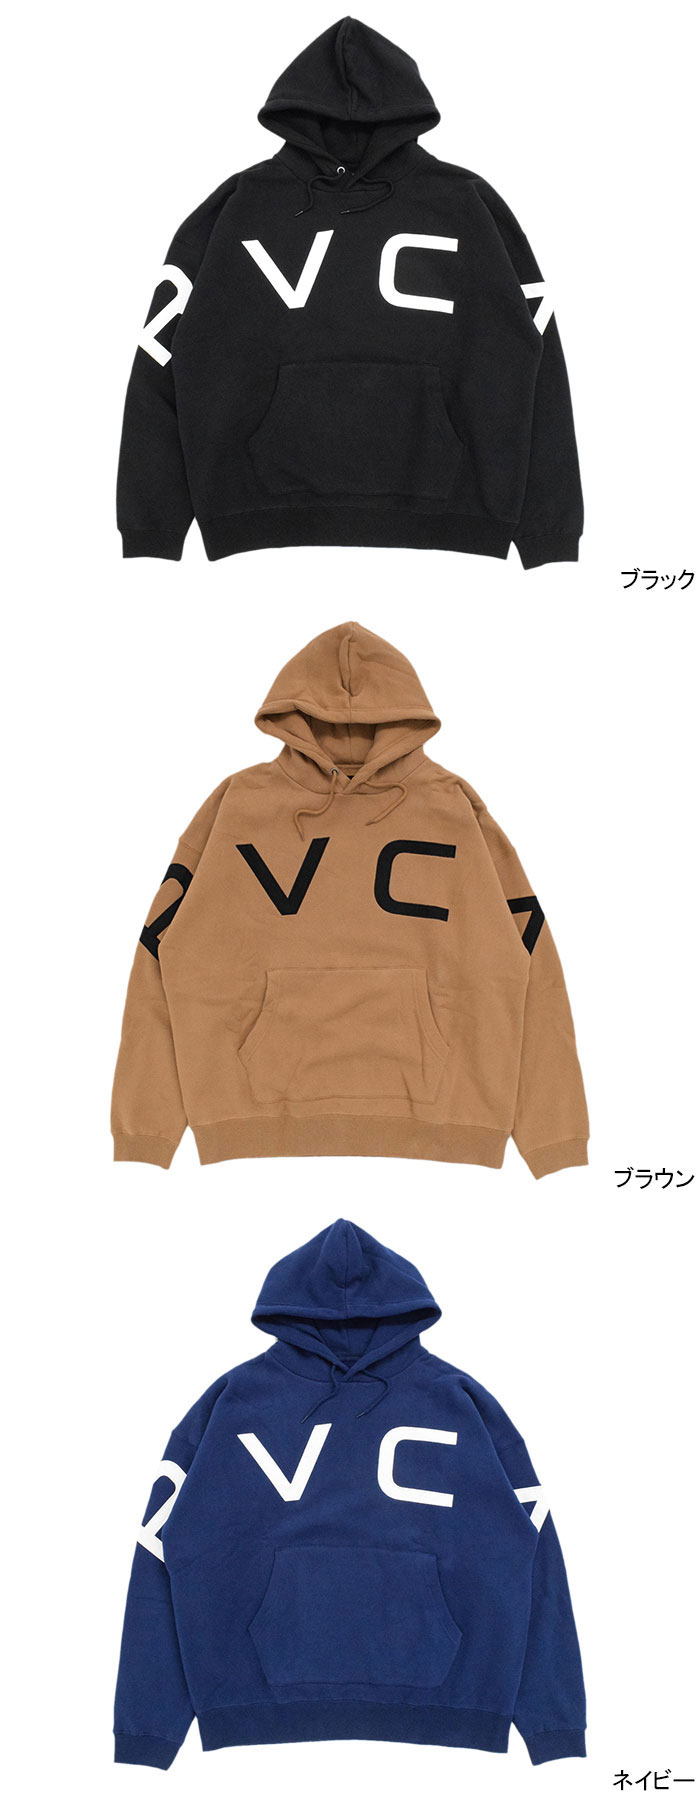 RVCAルーカのパーカー Fake RVCA Pullover Hoodie04